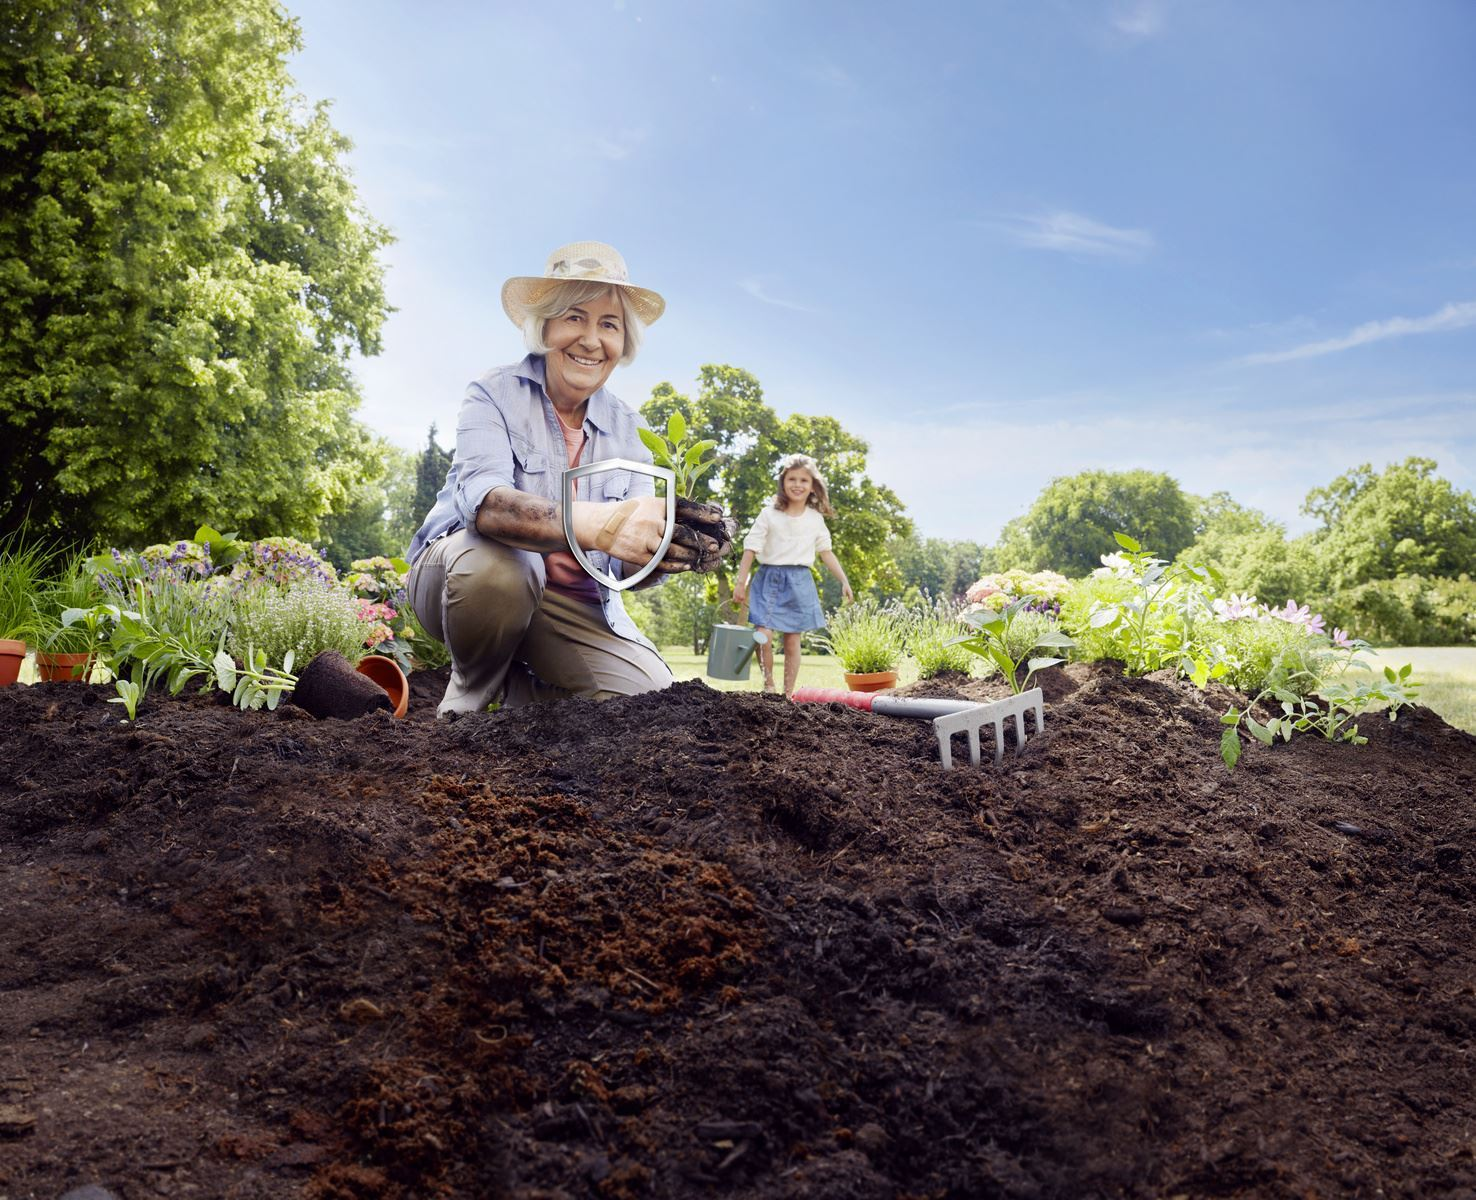 A woman kneels while gardening. She is holding soil but a plaster on her hand is clean.